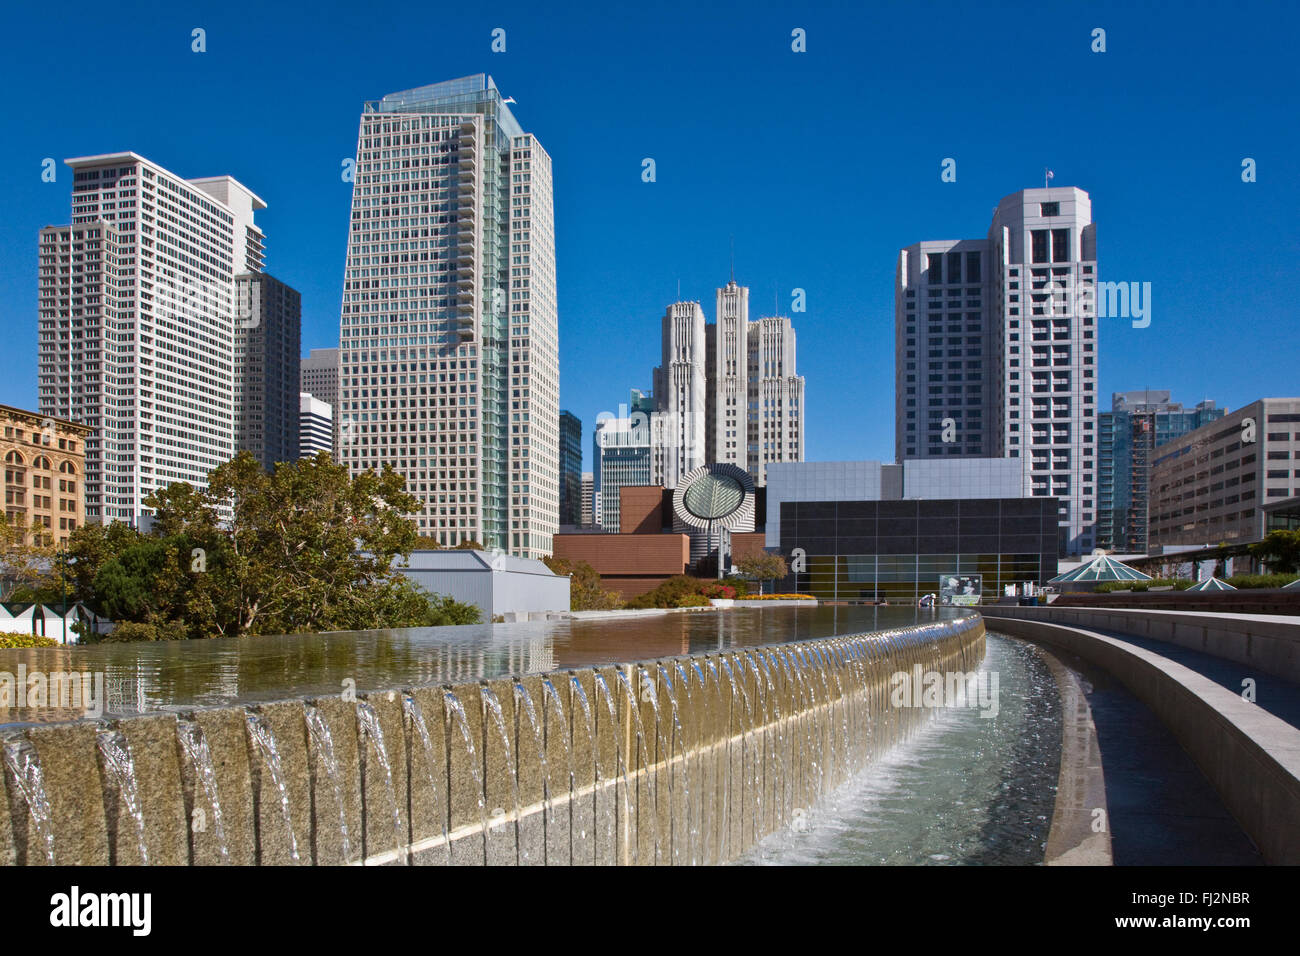 MARTIN LUTHER KING MEMORIAL WATER FOUNTAIN and the San Francisco Modern Art Museum from the YERBA BUENA CENTER  - Stock Image